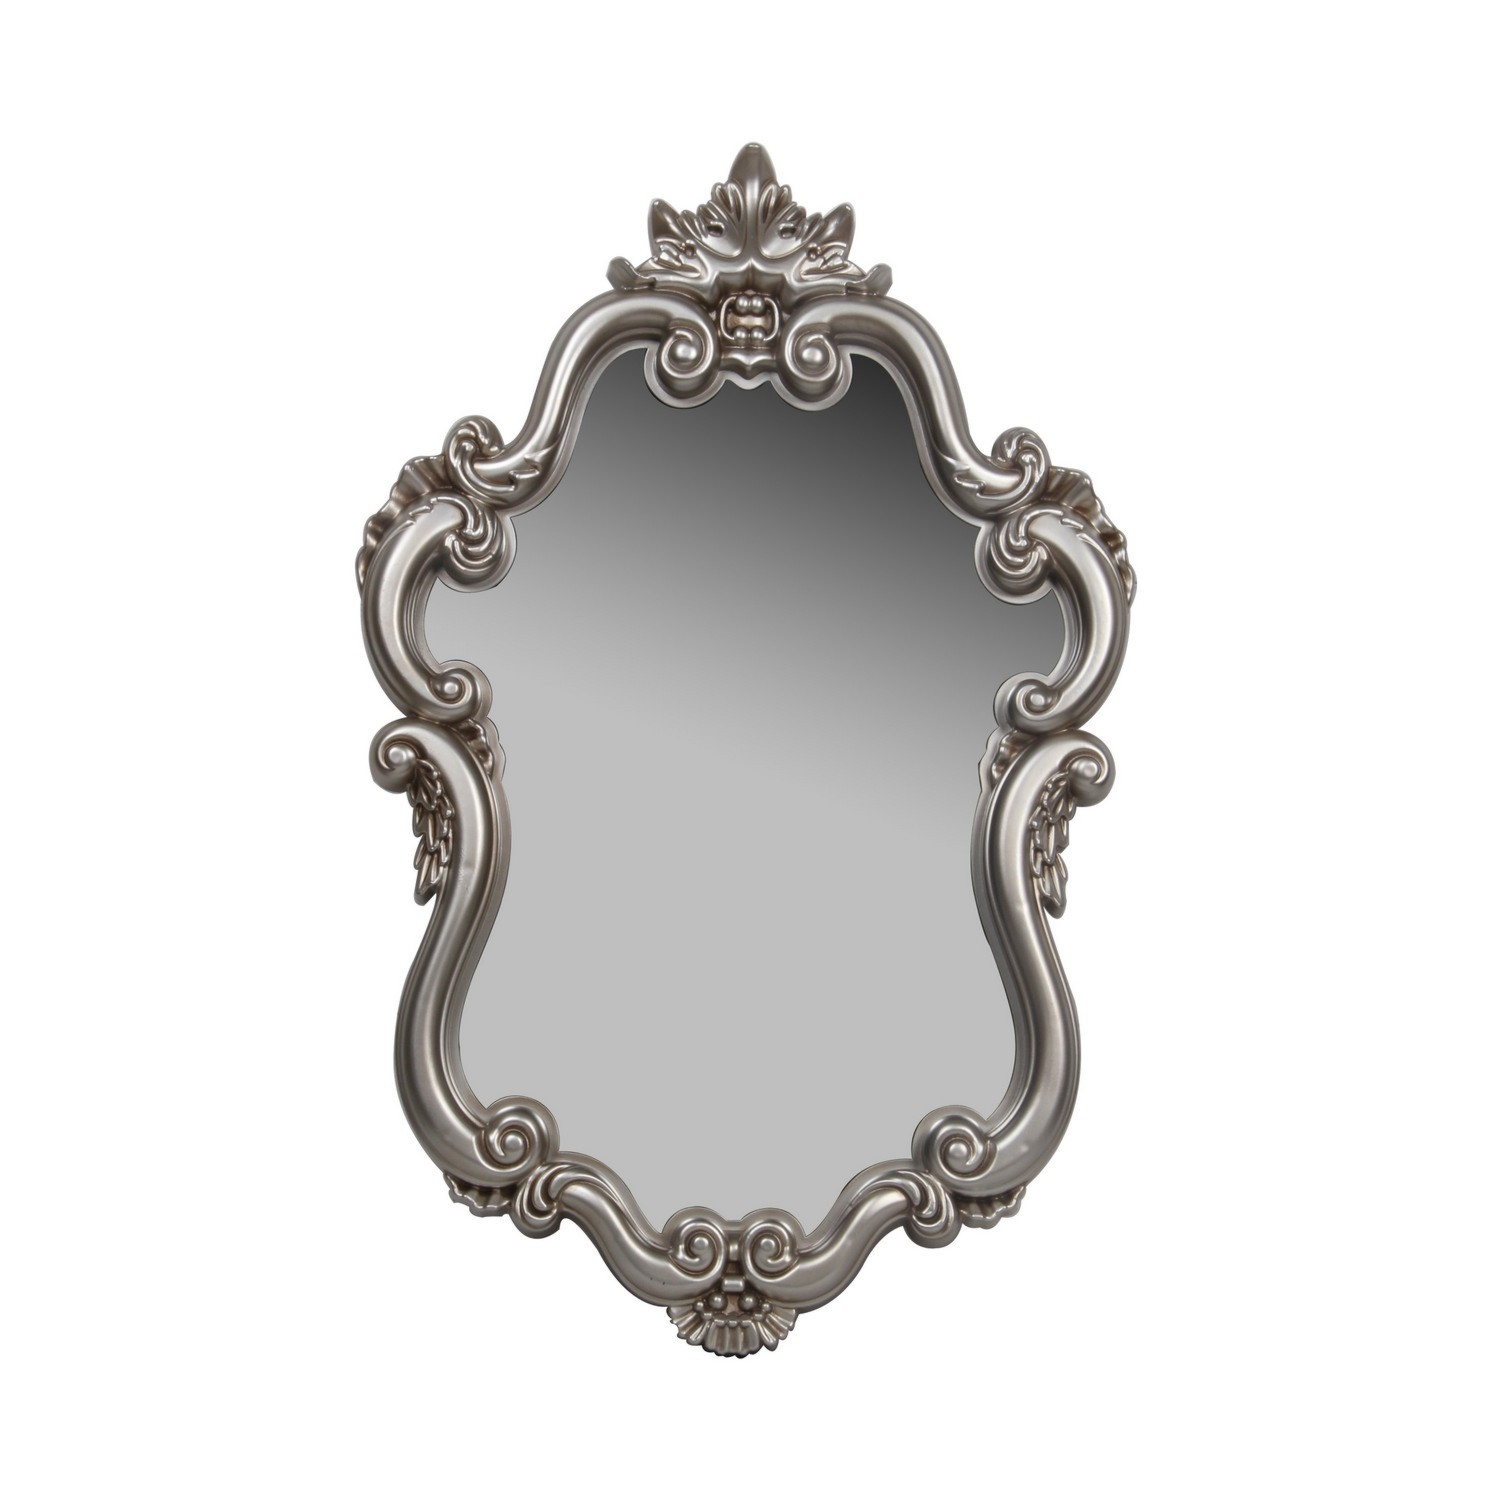 Champagne Baroque Mirror Intended For Baroque Mirror (View 9 of 15)